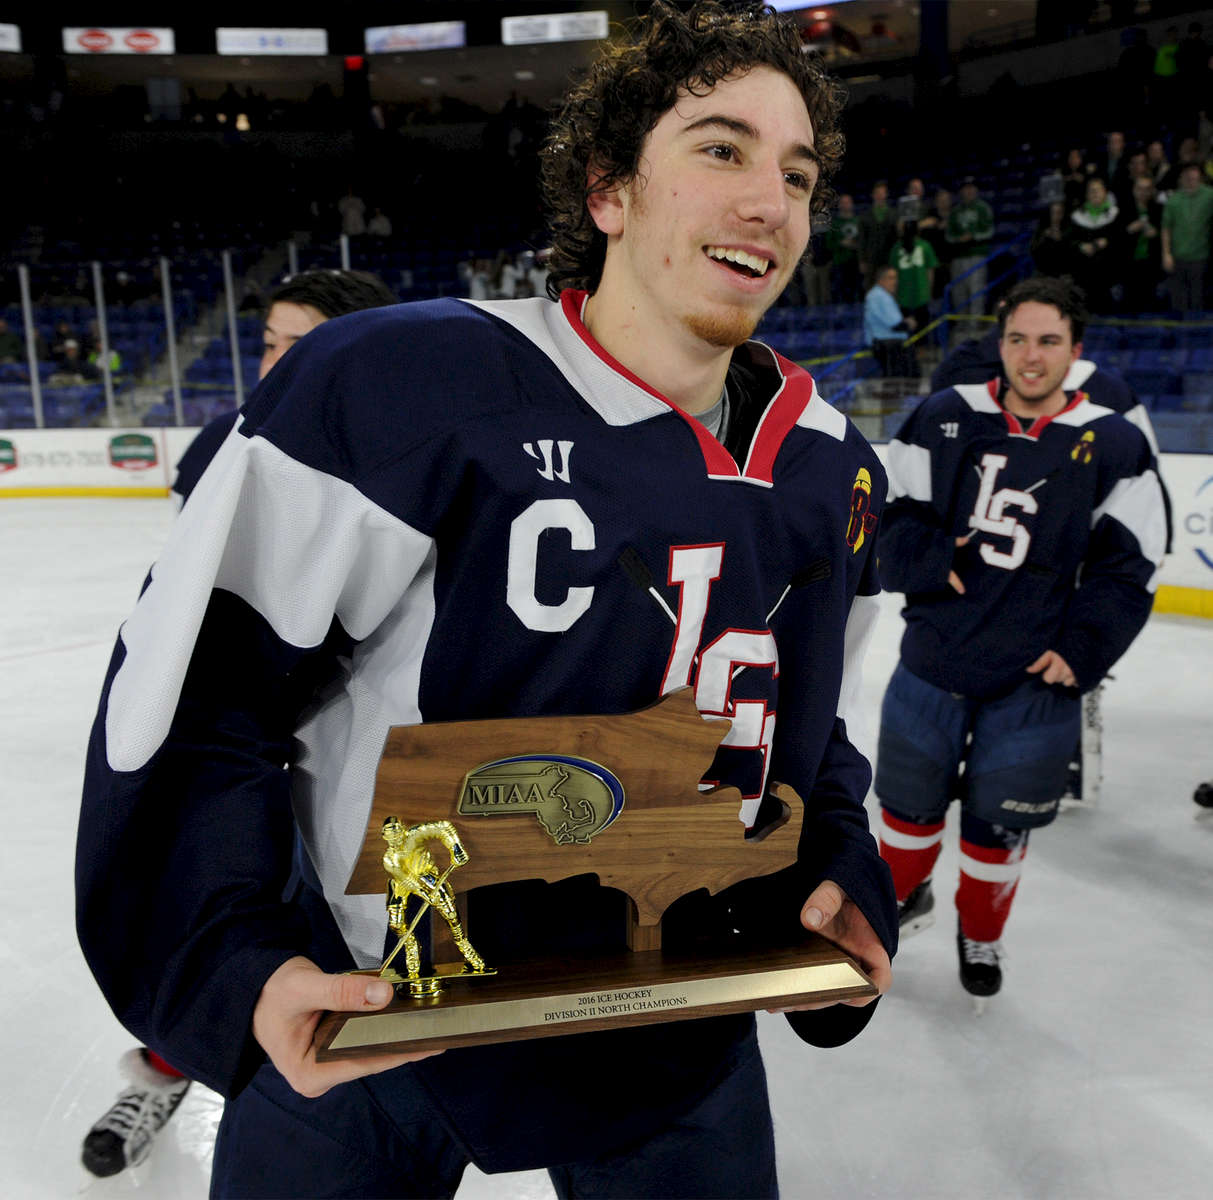 3/14/16-- LOWELL --  Lincoln-Sudbury senior captain  #19 Myles Cohen skates off the ice at Tsongas Arena after defeating Marblehead in the Division 2 North boys hockey championship game Monday evening.Daioly News and Wicked Local Staff Photo/Art Illman